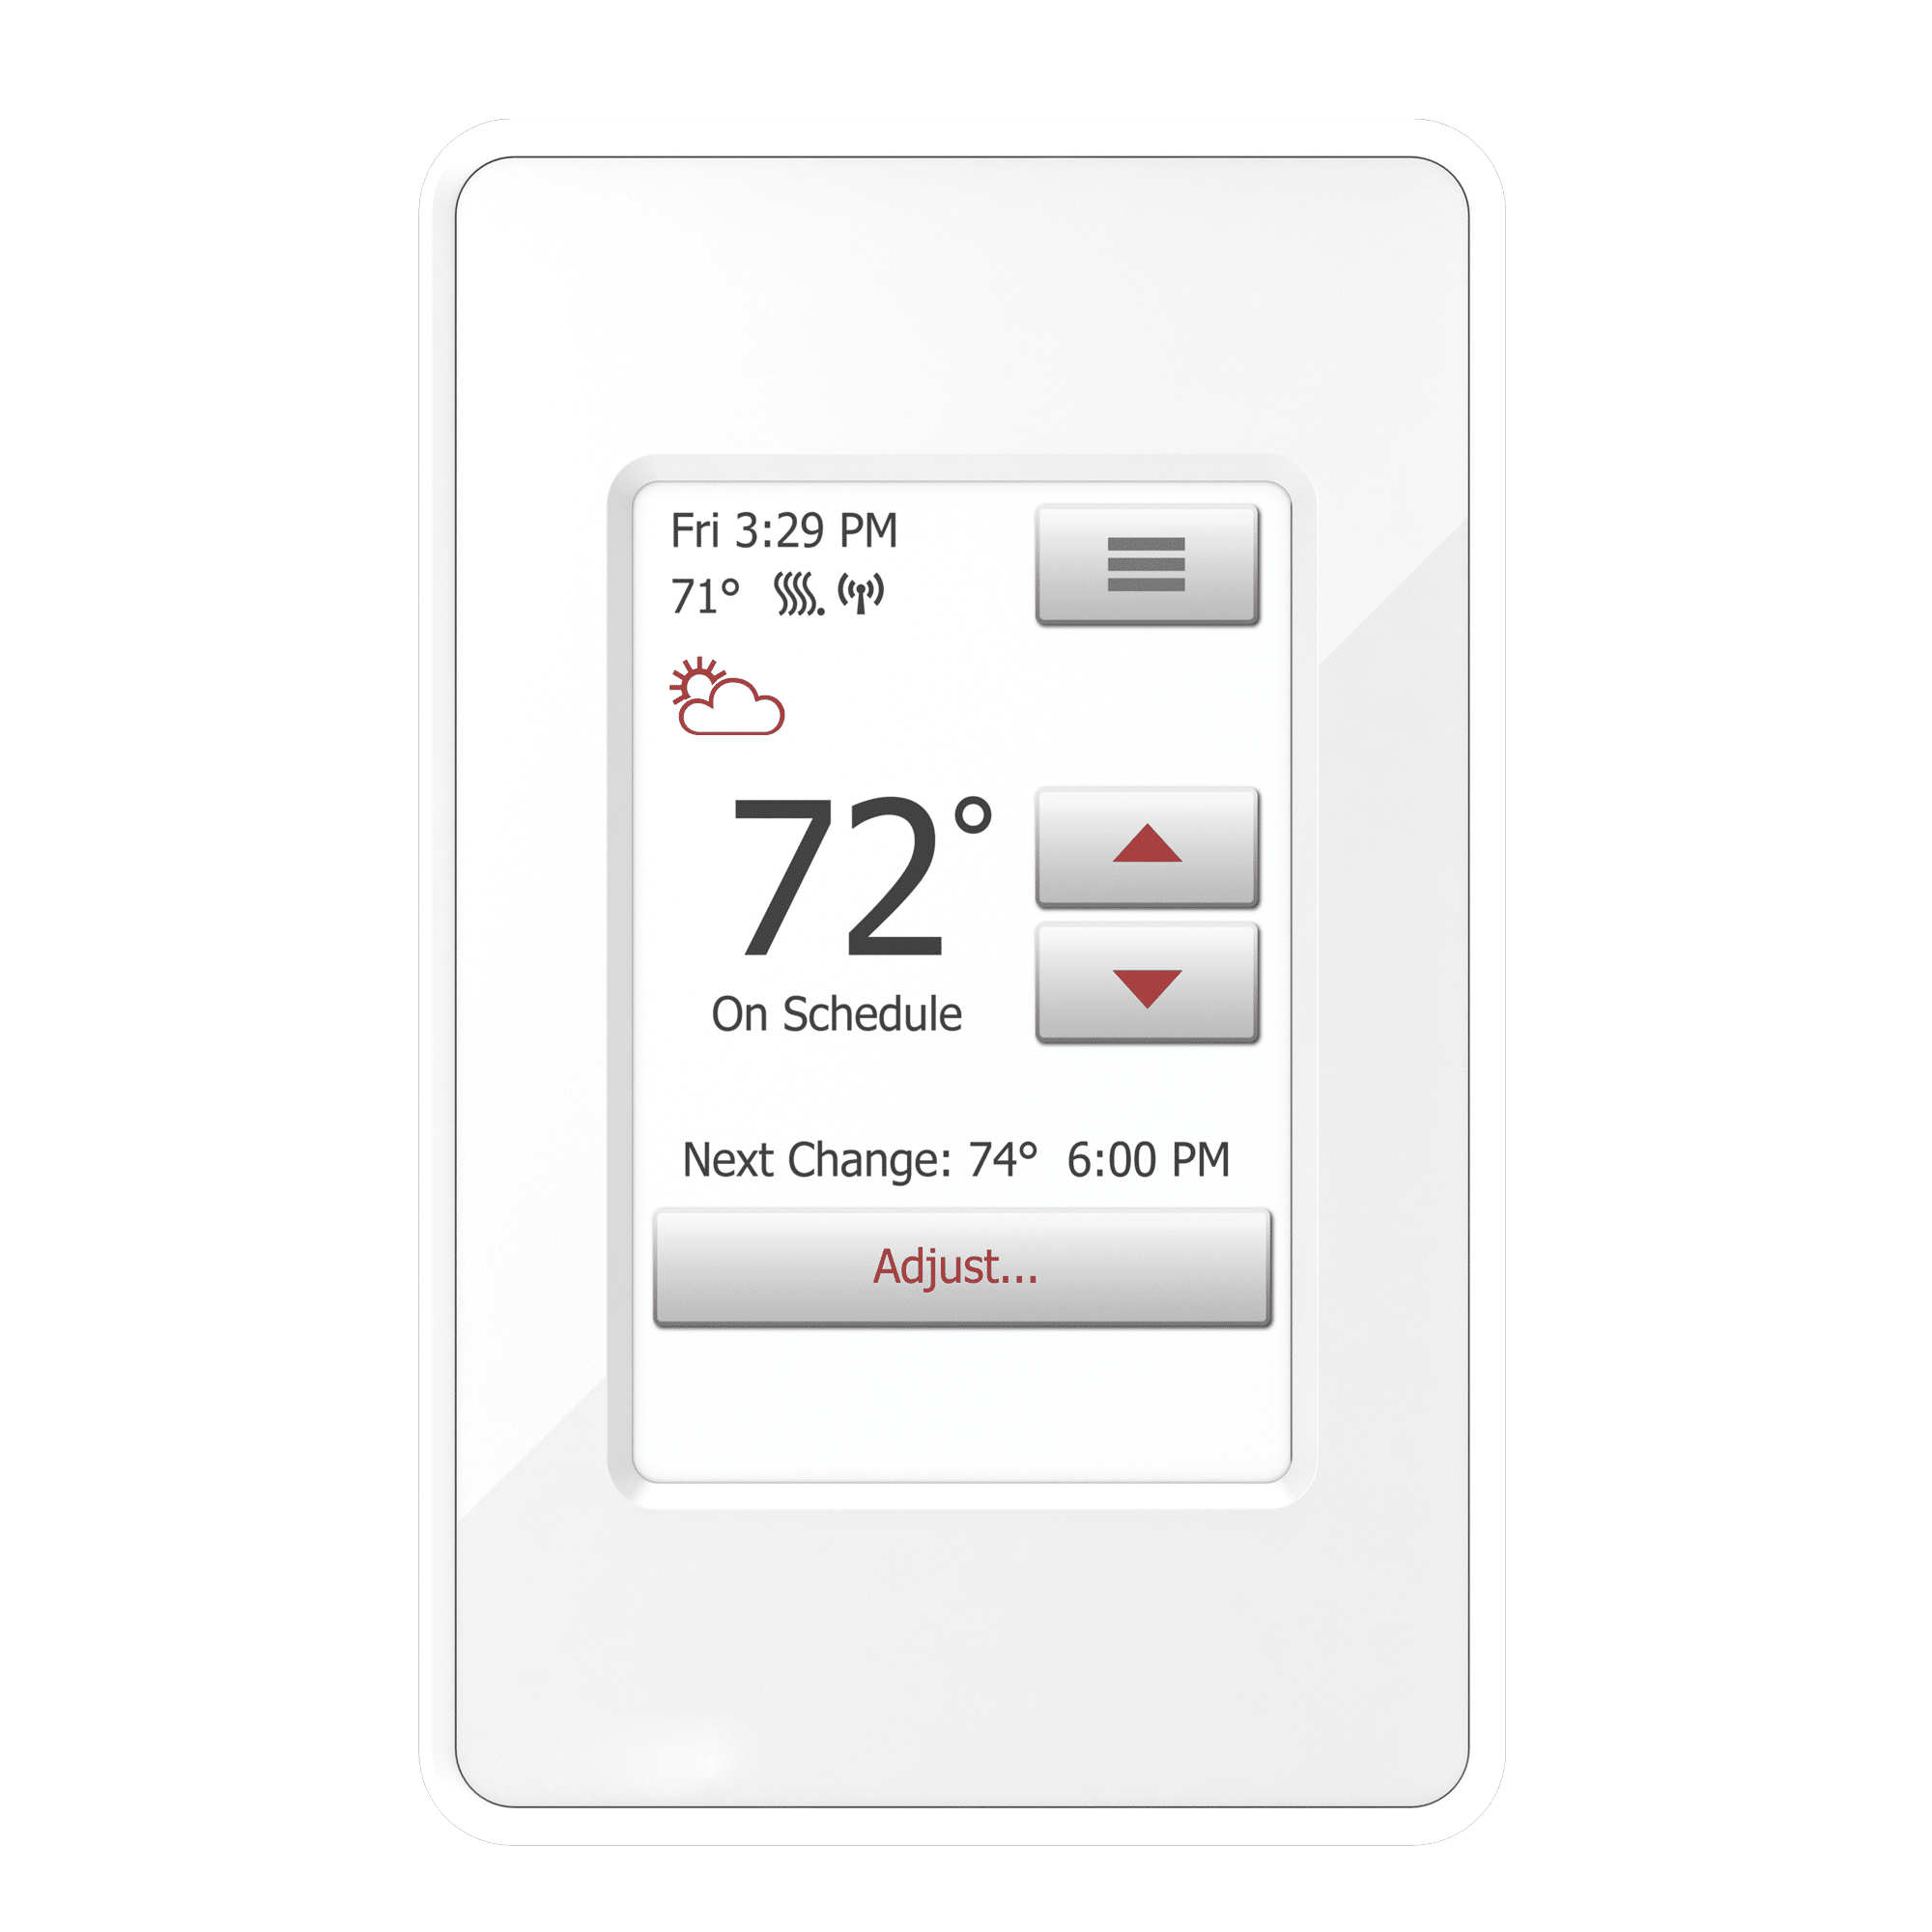 Floor Heating Thermostats Systems Electric Heated Under Thermostat Uwg4 4999 Nspire Touch Wifi 1c7be1